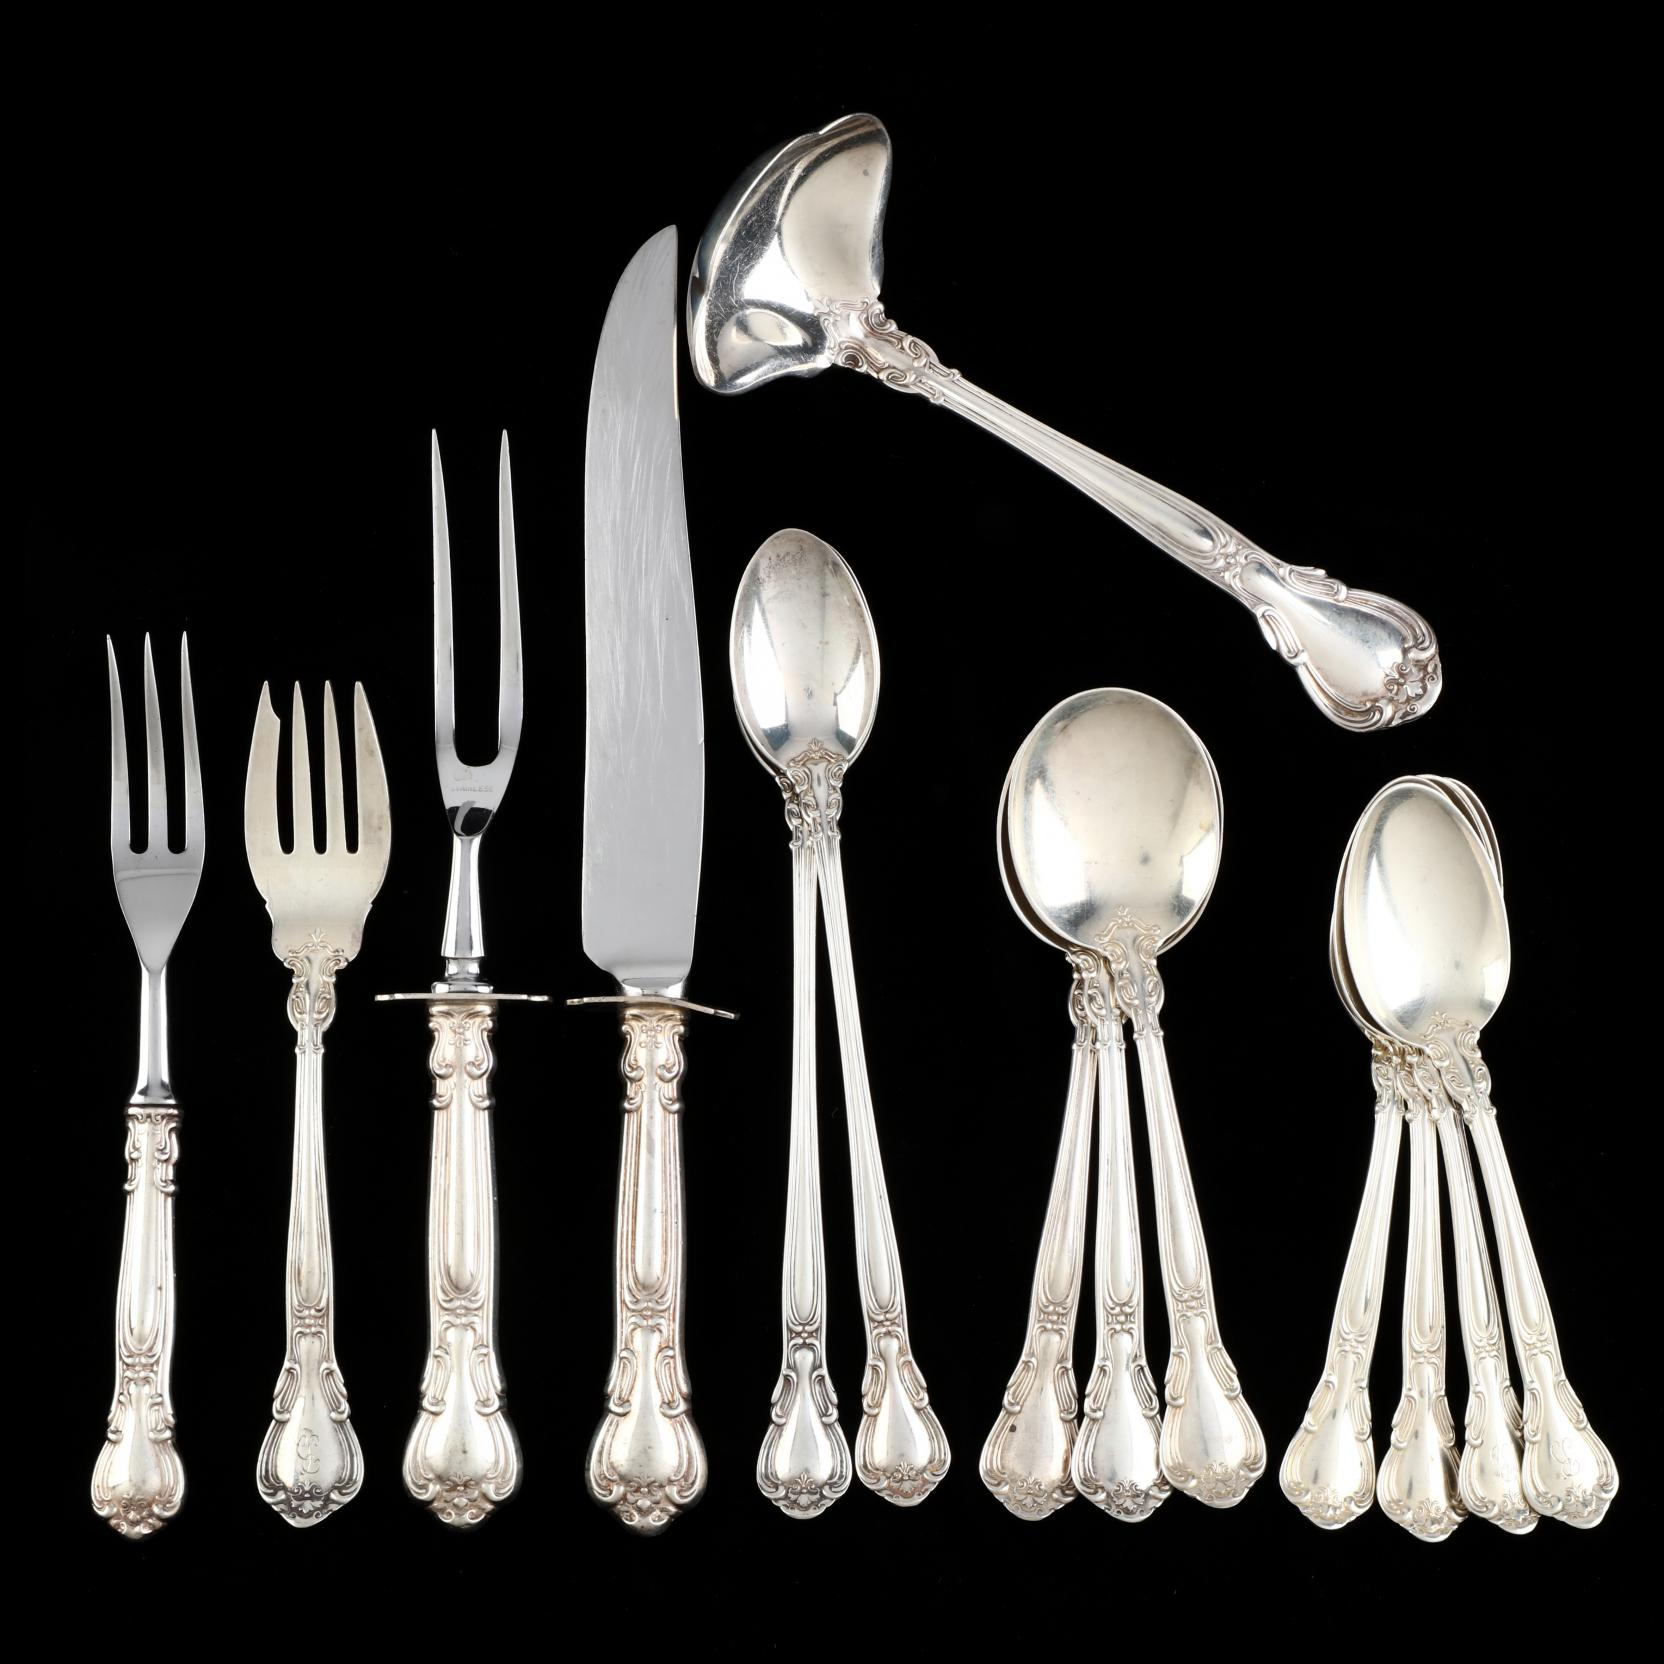 a-group-of-gorham-chantilly-sterling-silver-flatware